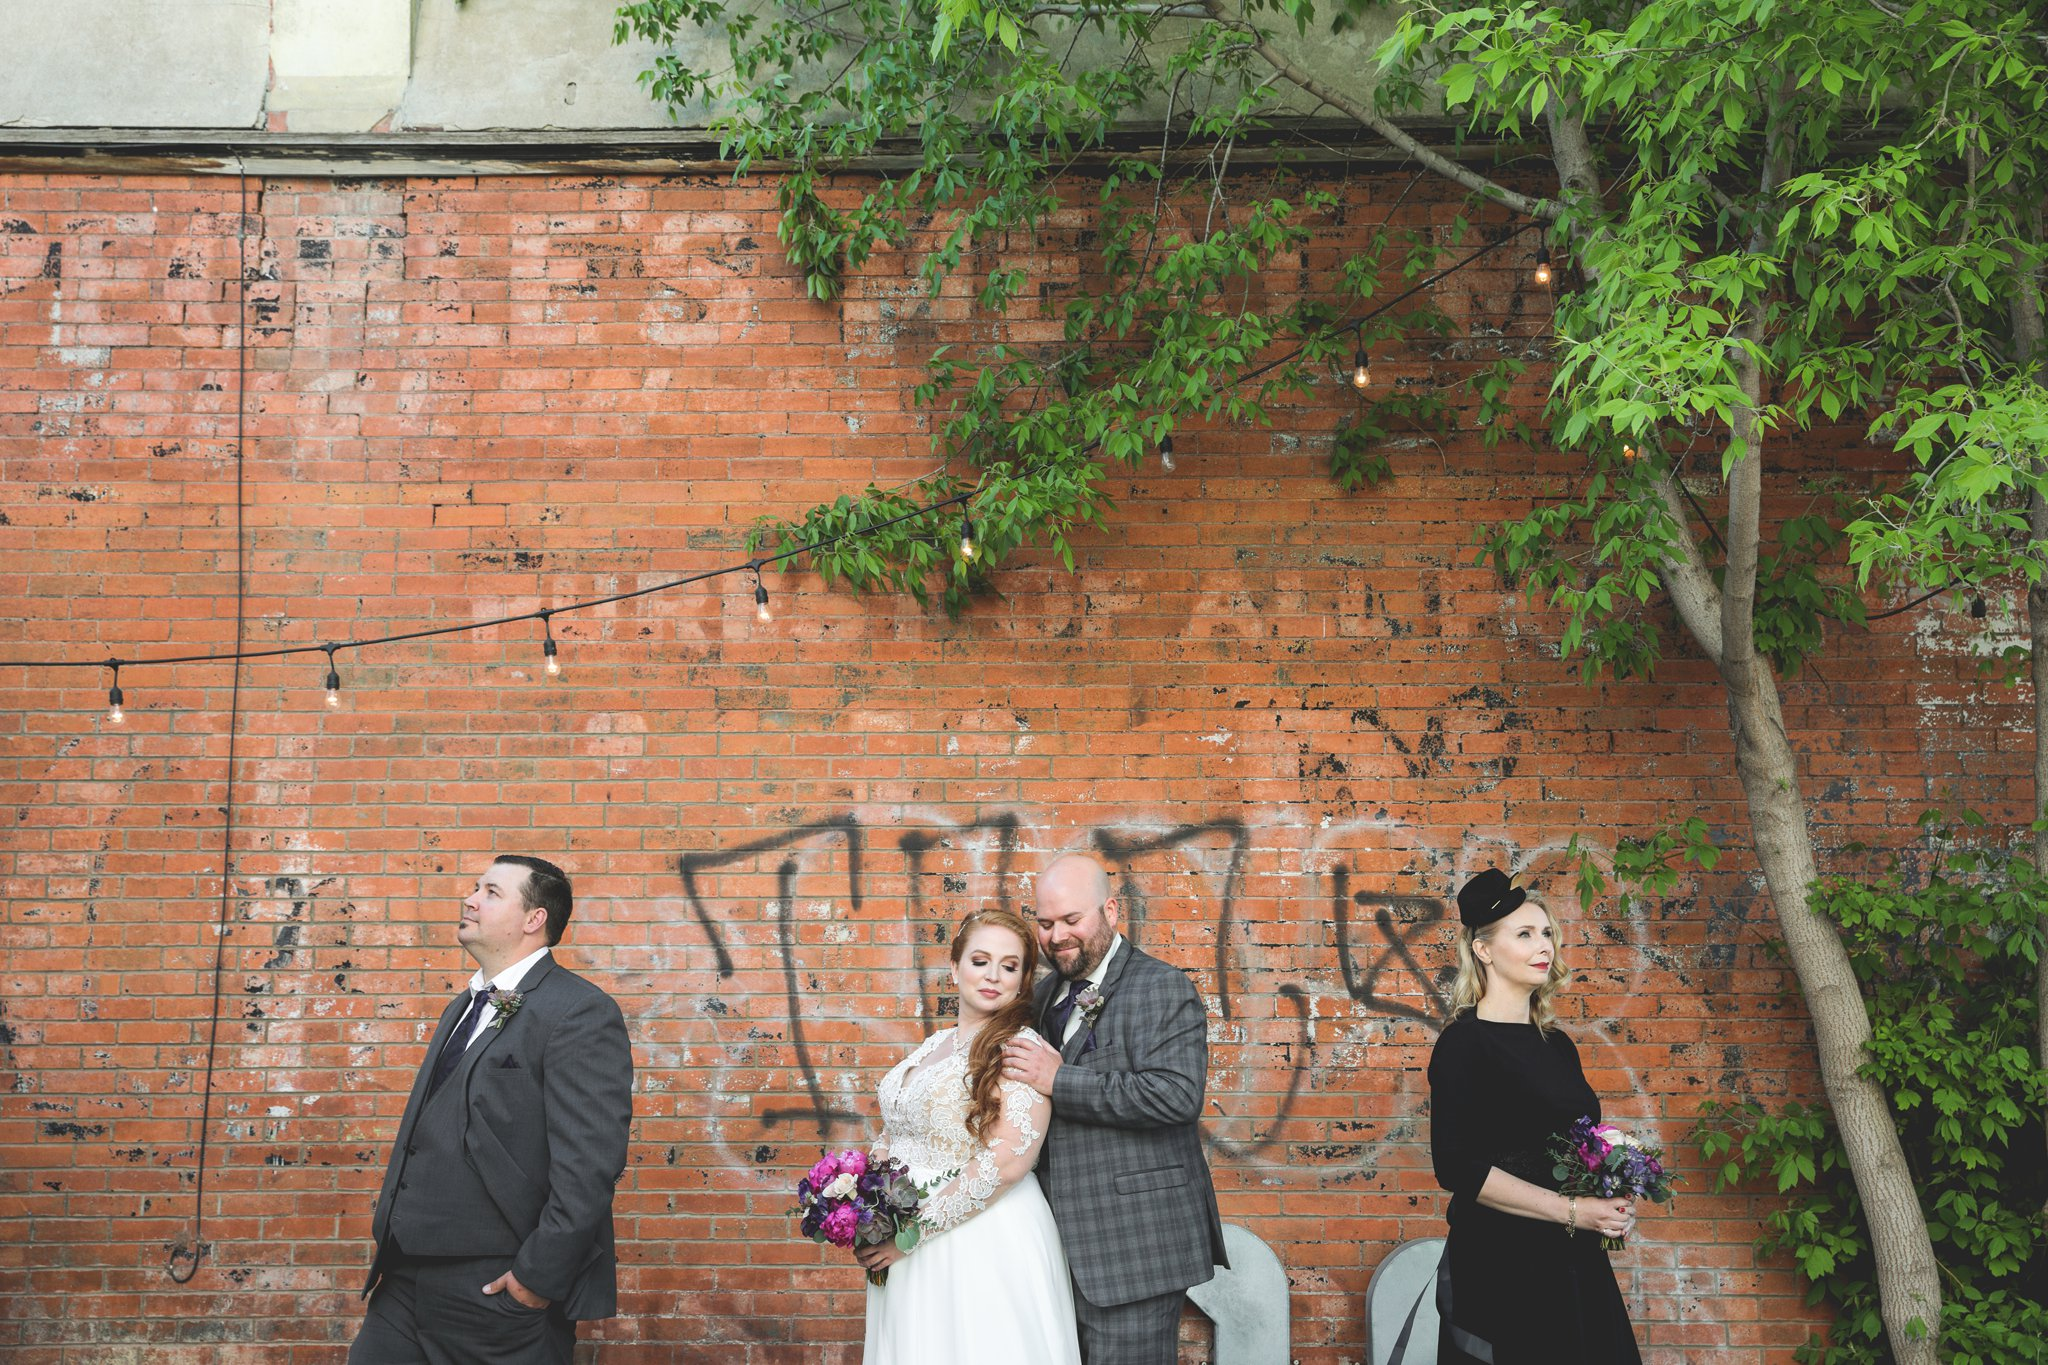 AshleyDaphnePhotography Calgary Wedding Photographer Rouge Inglewood Bride Groom Photography_0100.jpg